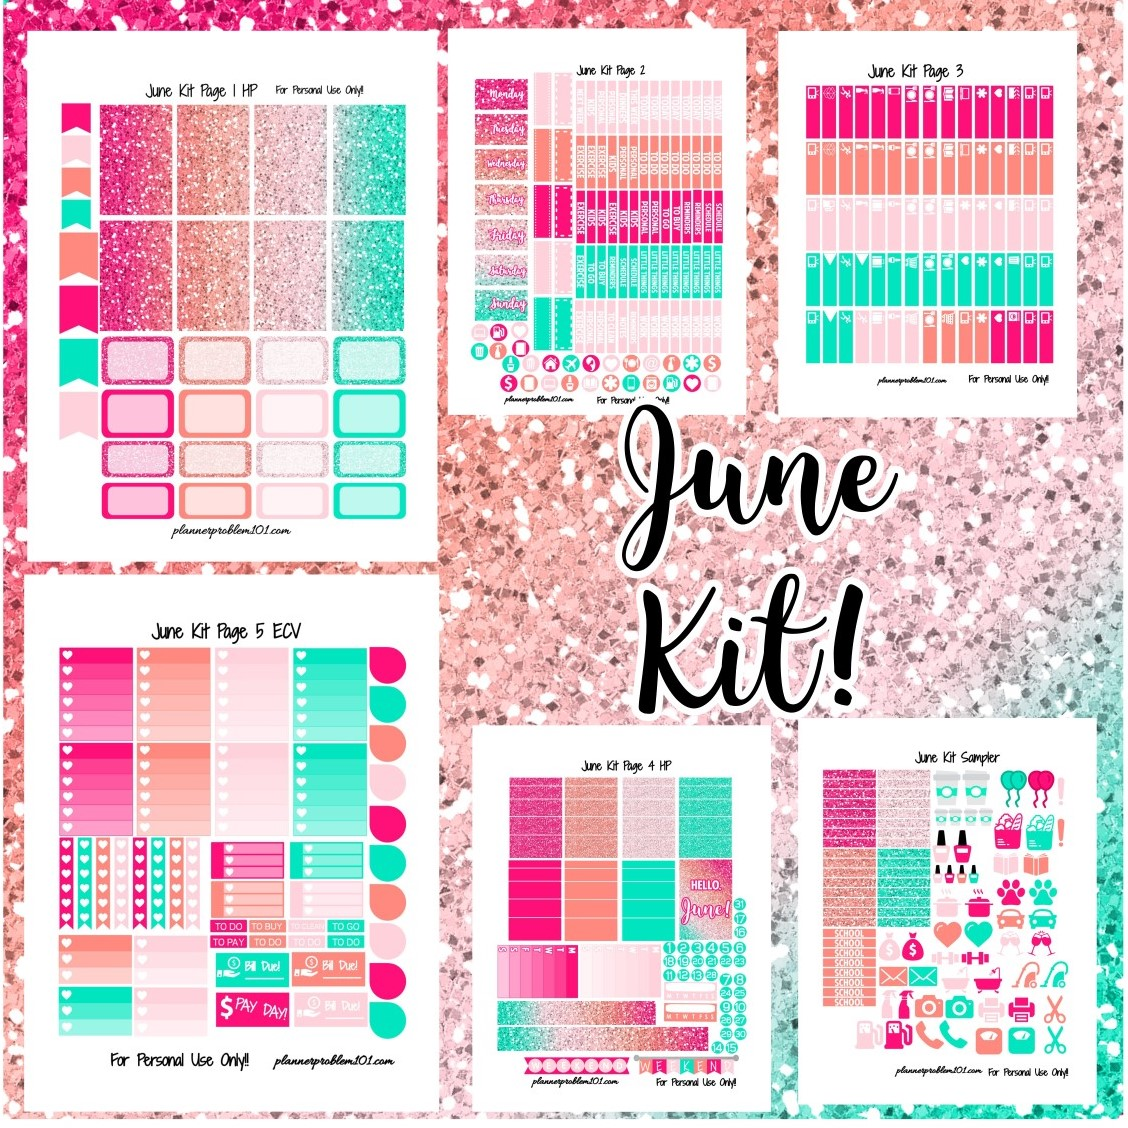 photograph regarding Free Printable Stickers titled June Glitter Package! No cost Printable Planner Stickers